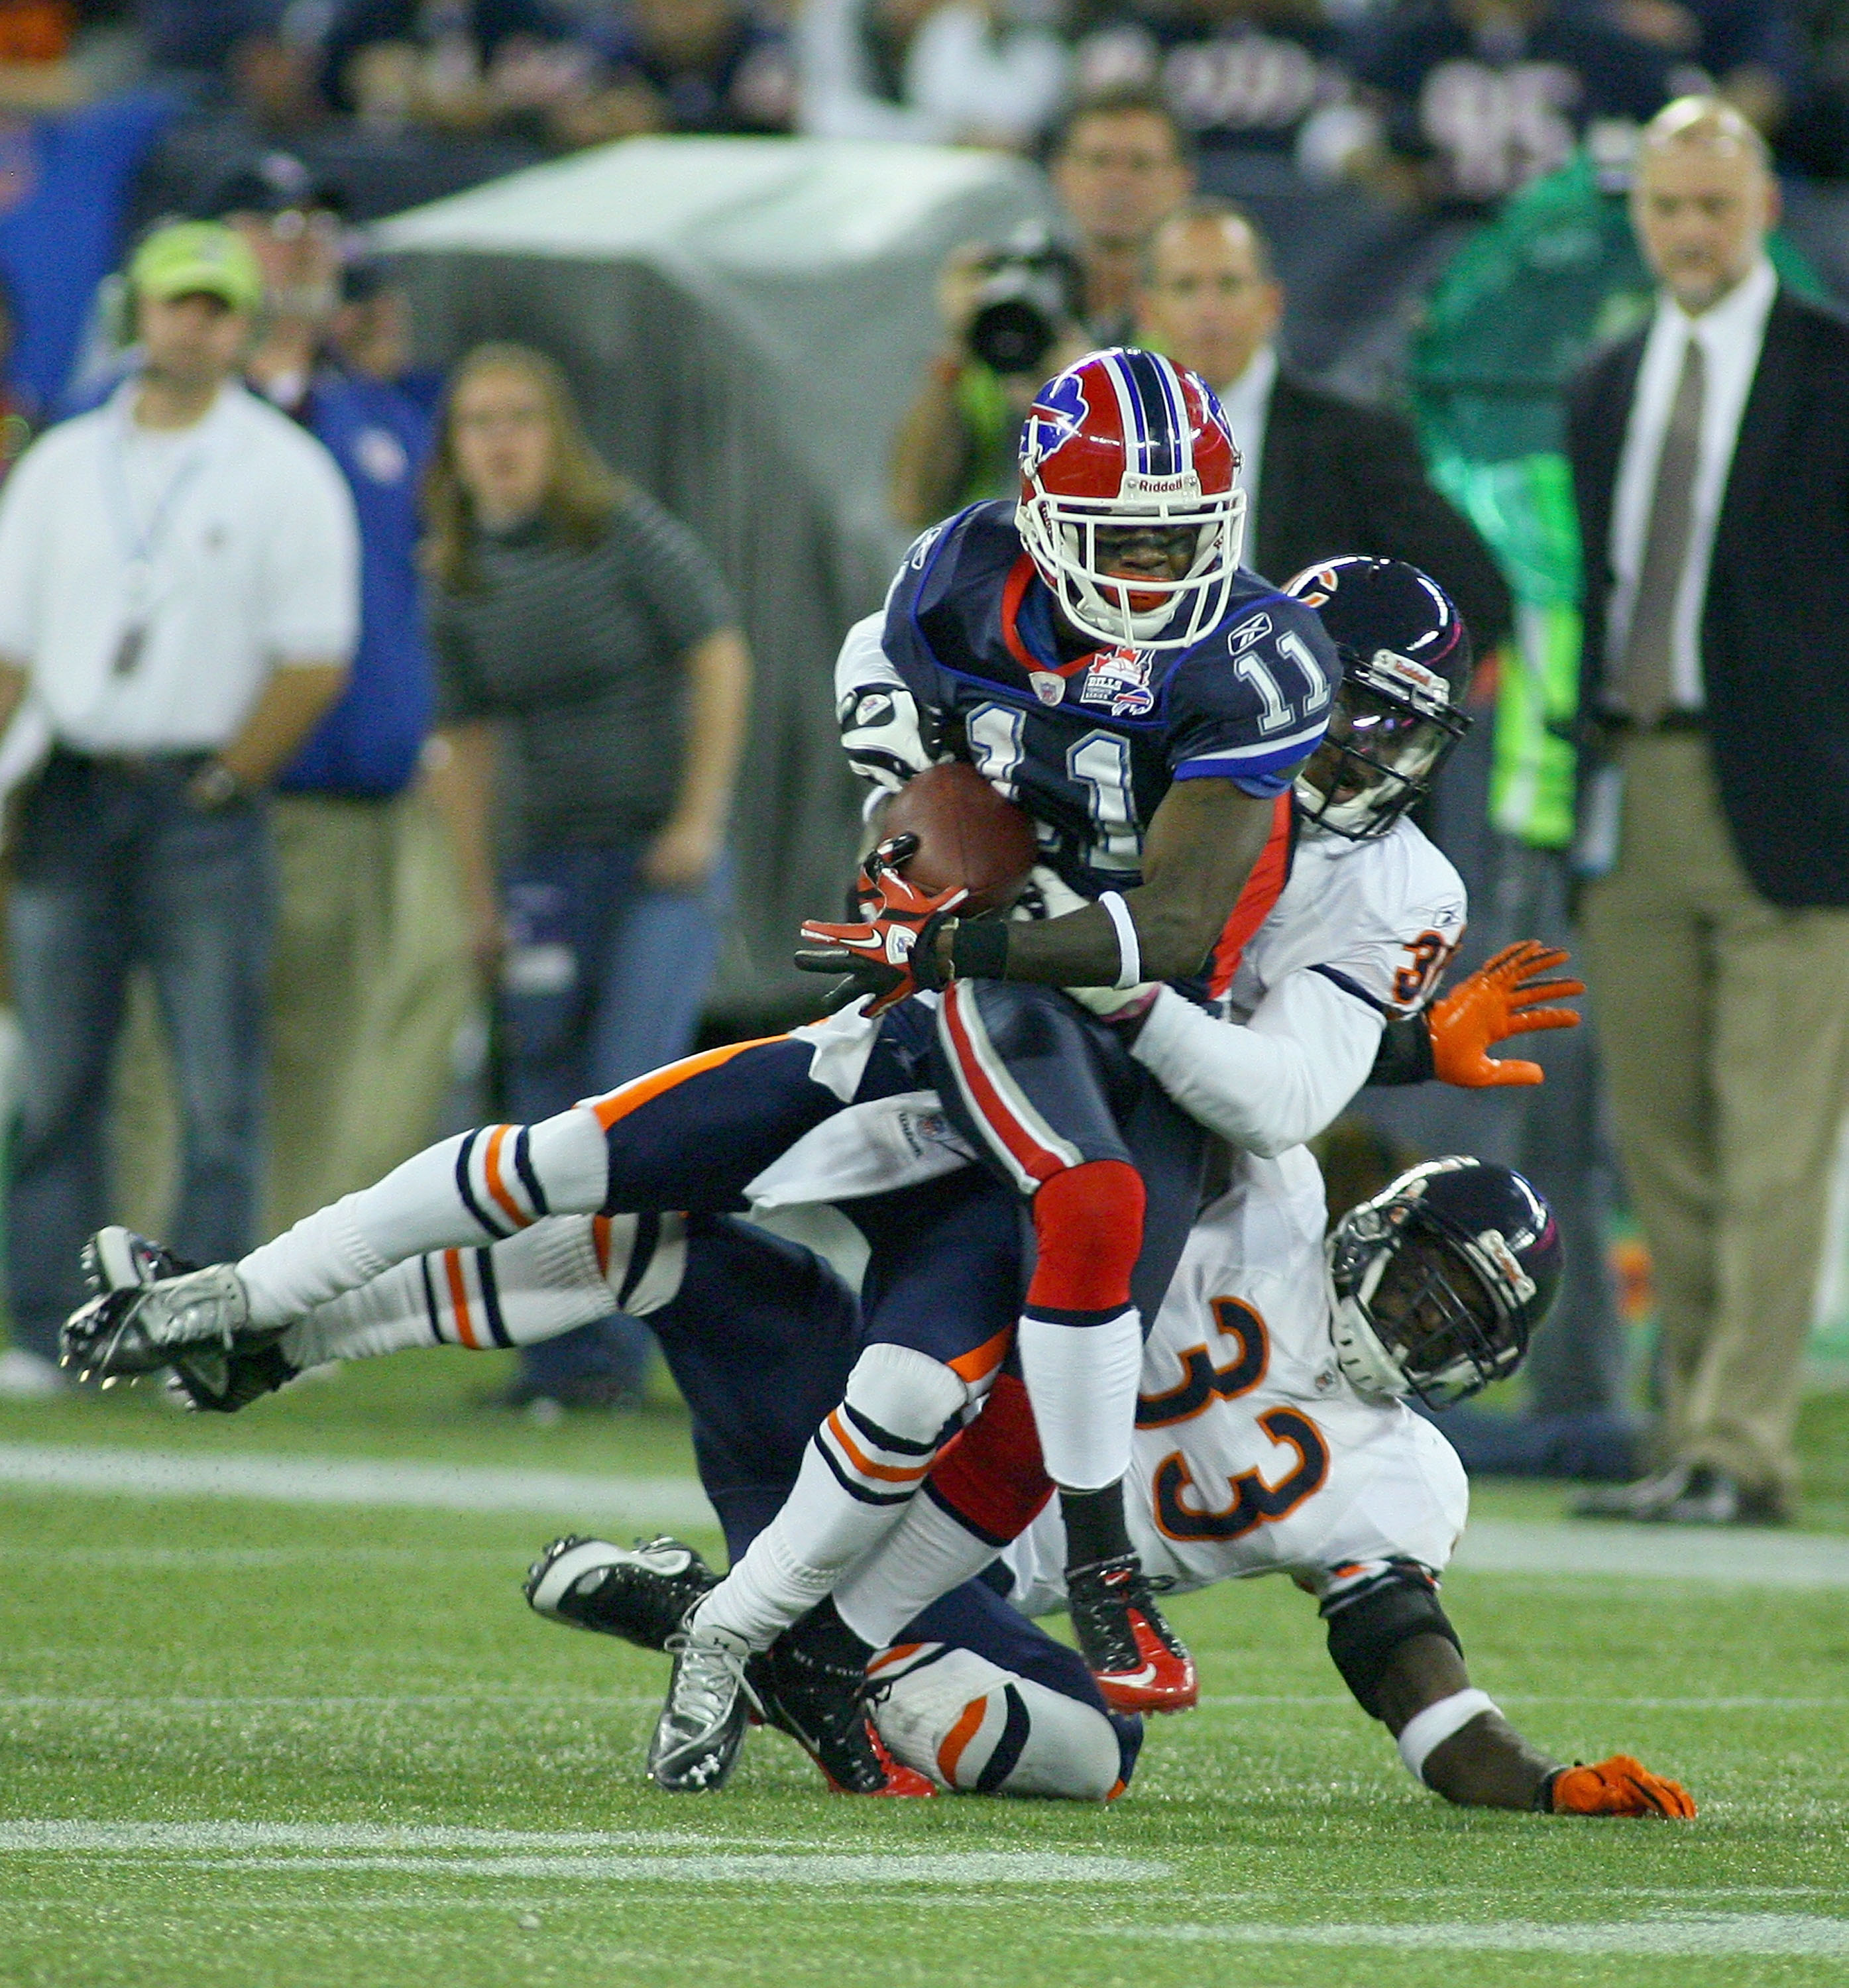 TORONTO, ON - NOVEMBER 07: Roscoe Parrish #11 of the Buffalo Bills is tackled by D.J. Moore #30 and Charles Tillman #33 of the Chicago Bears at Rogers Centre on November 7, 2010 in Toronto, Canada.  Chicago won 22-19. (Photo by Rick Stewart/Getty Images)